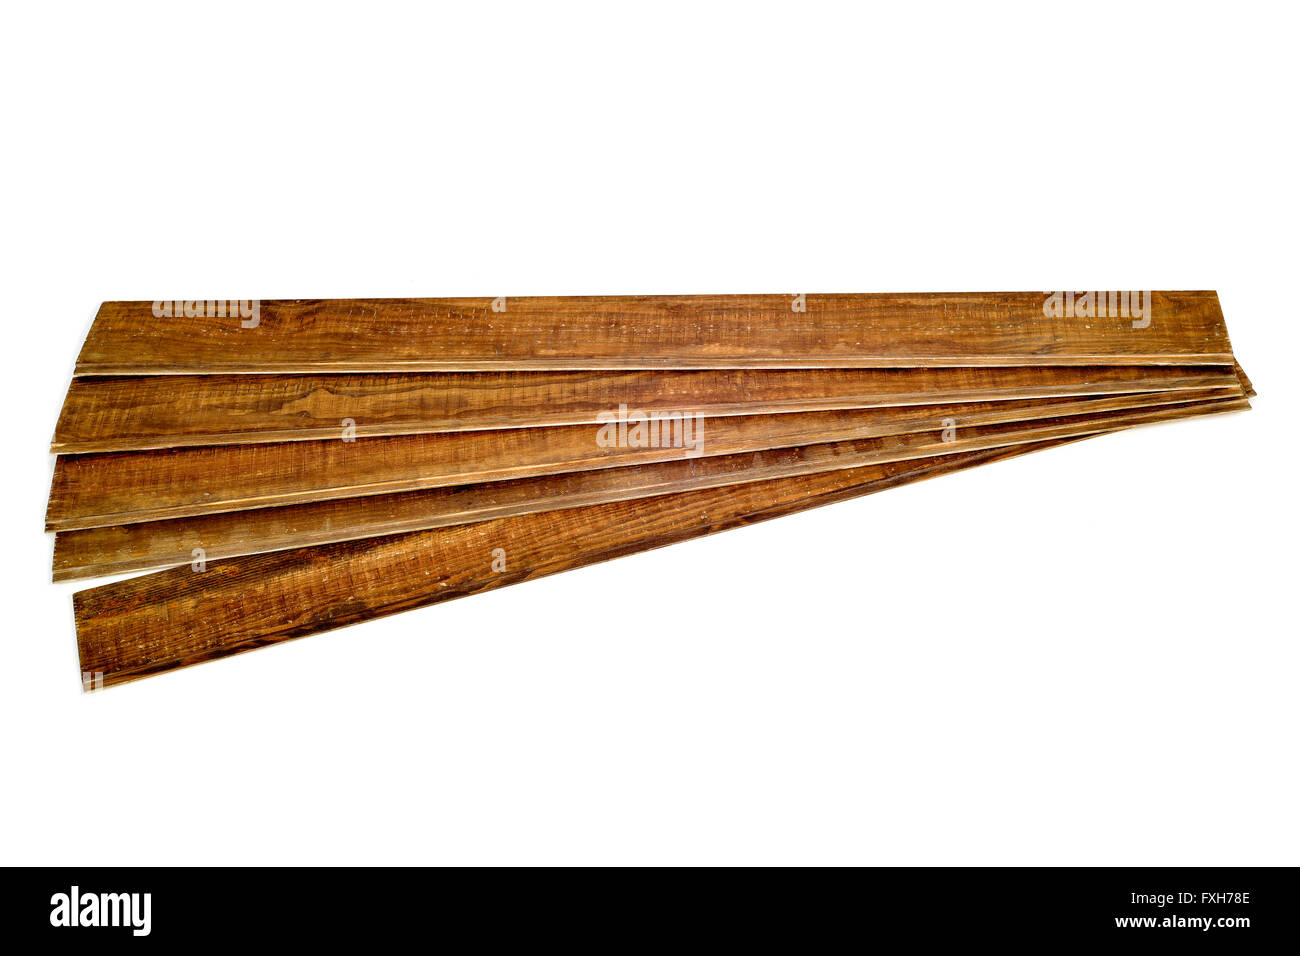 some rustic wooden planks on a white background - Stock Image